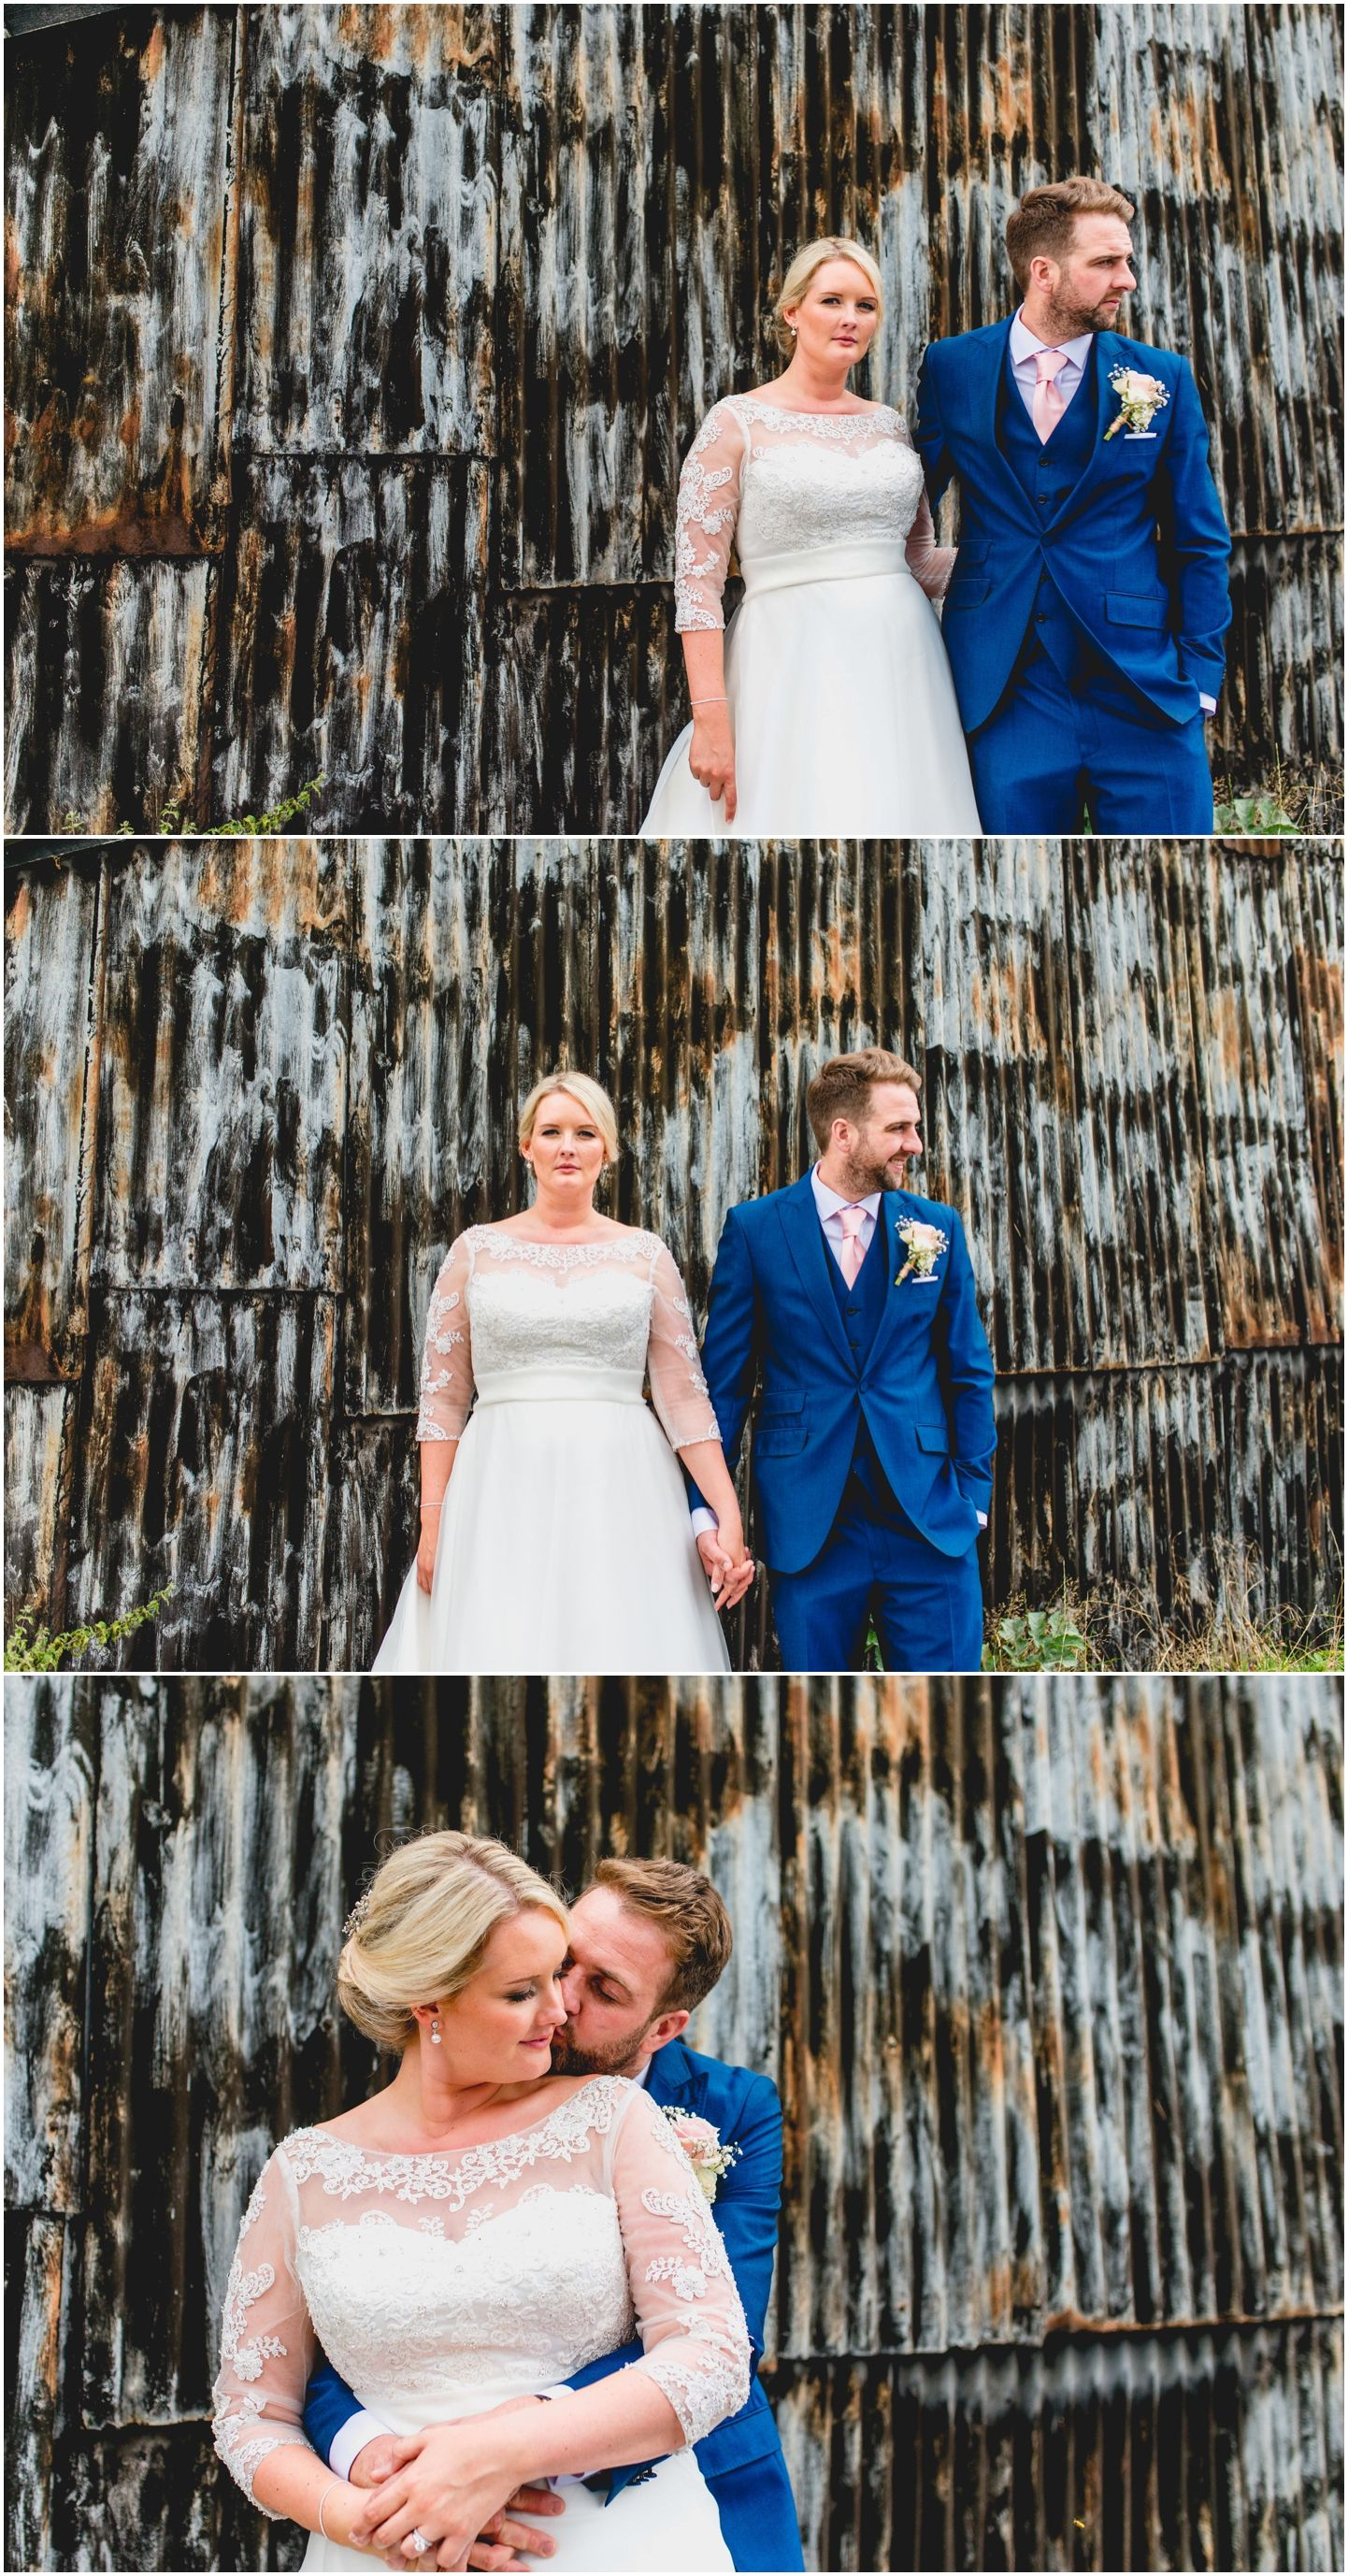 Rebecca and Neil's Curradine Barns Wedding | Barn wedding ...